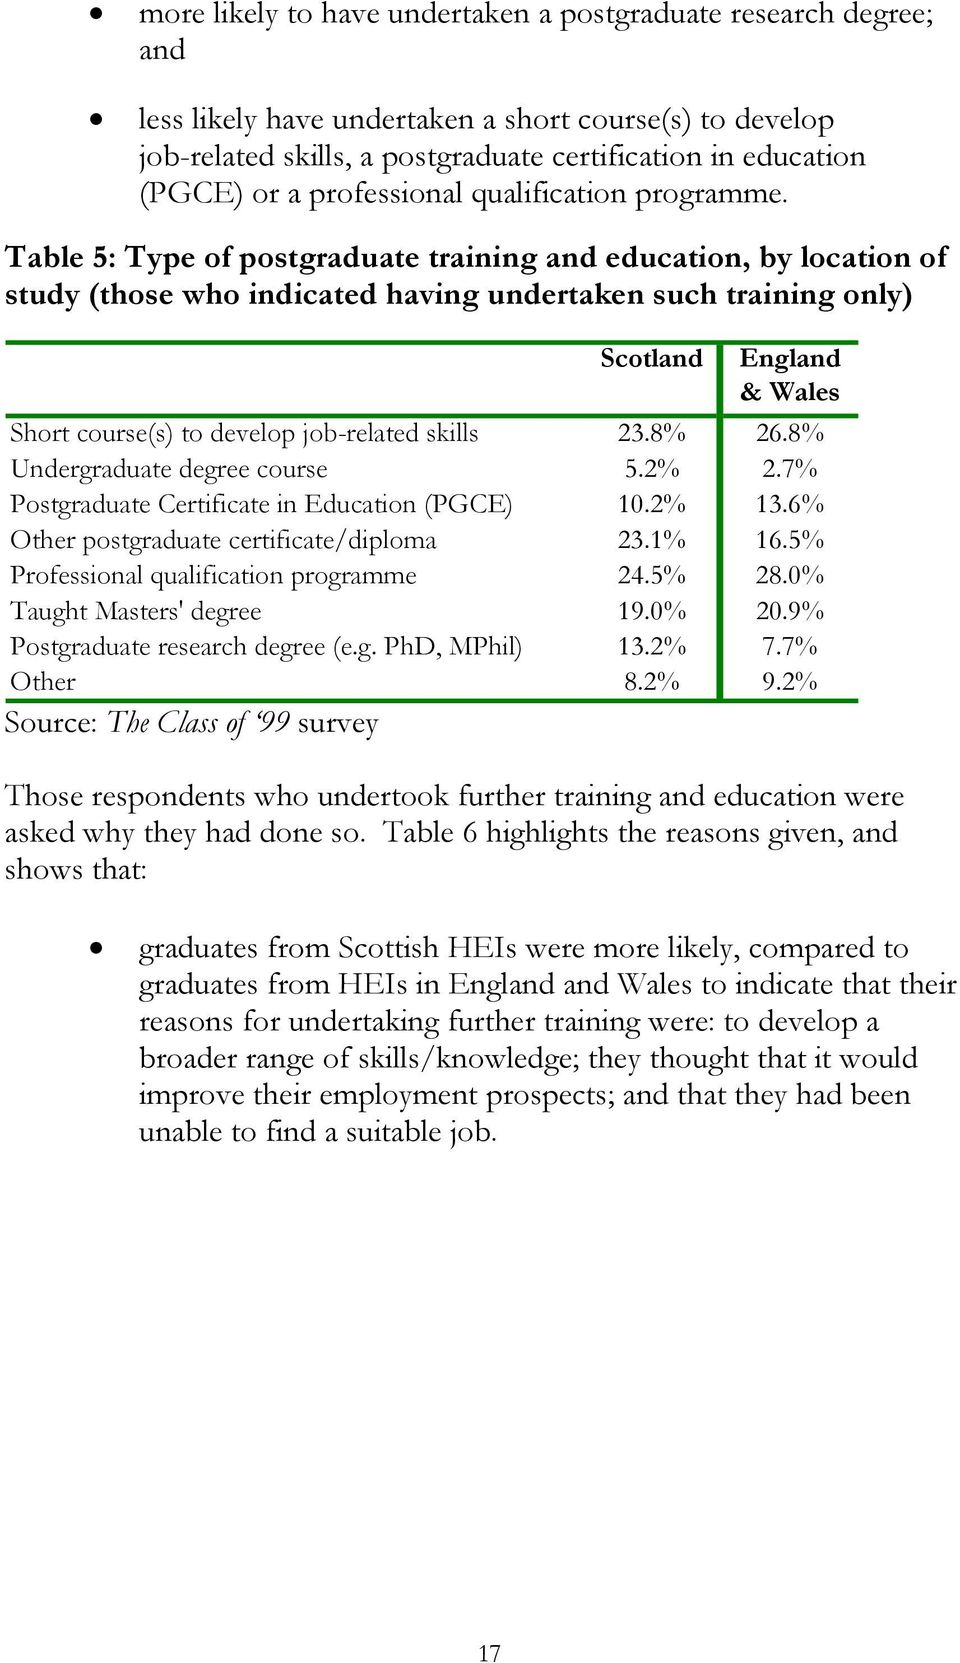 Table 5: Type of postgraduate training and education, by location of study (those who indicated having undertaken such training only) Scotland England & Wales Short course(s) to develop job-related